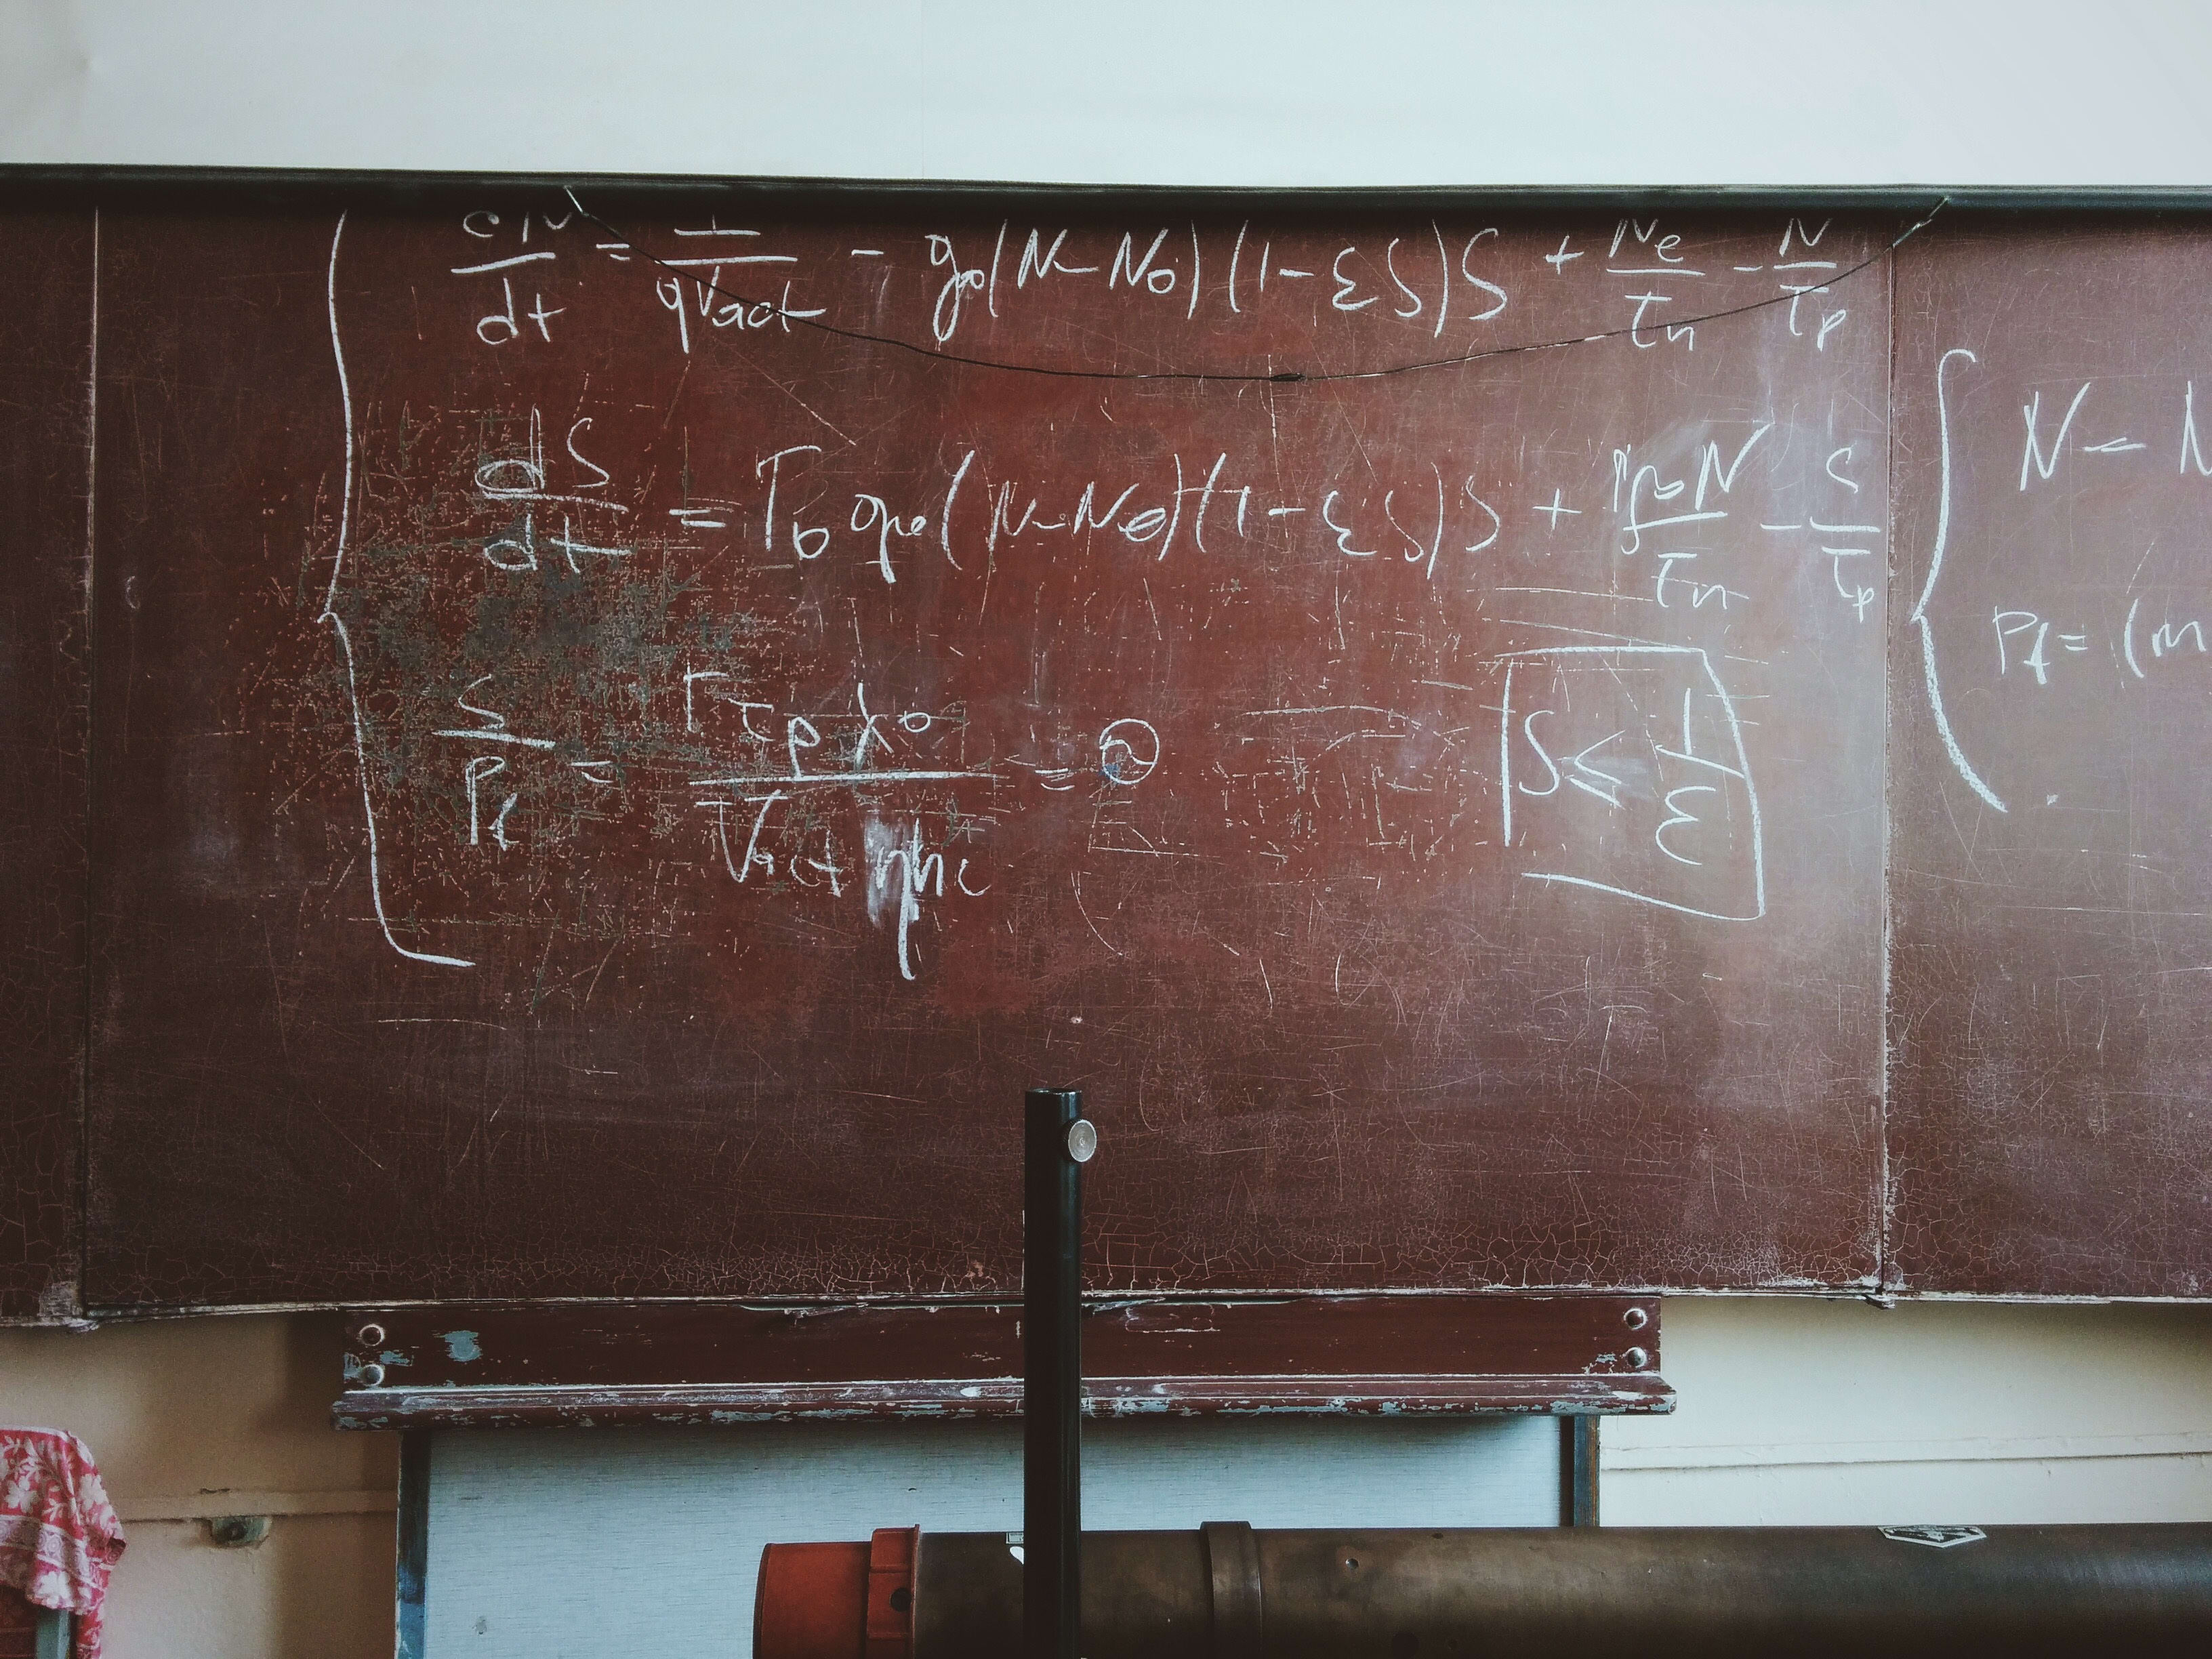 A chalkboard with complicated formulas written on it